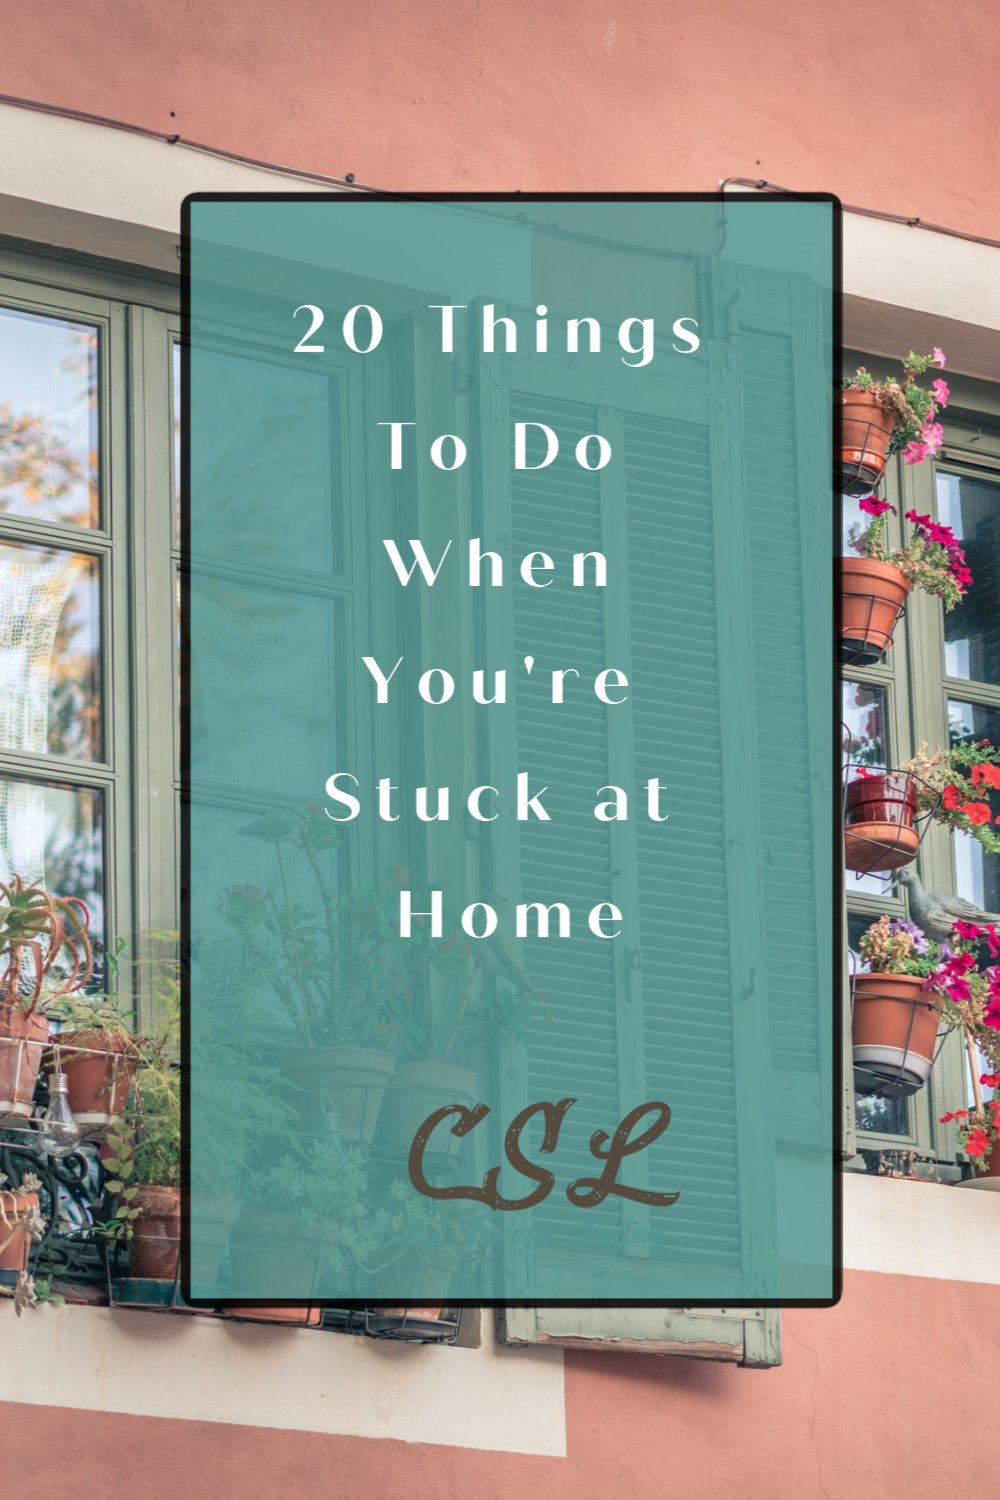 20 Things To Do When You're Stuck at Home